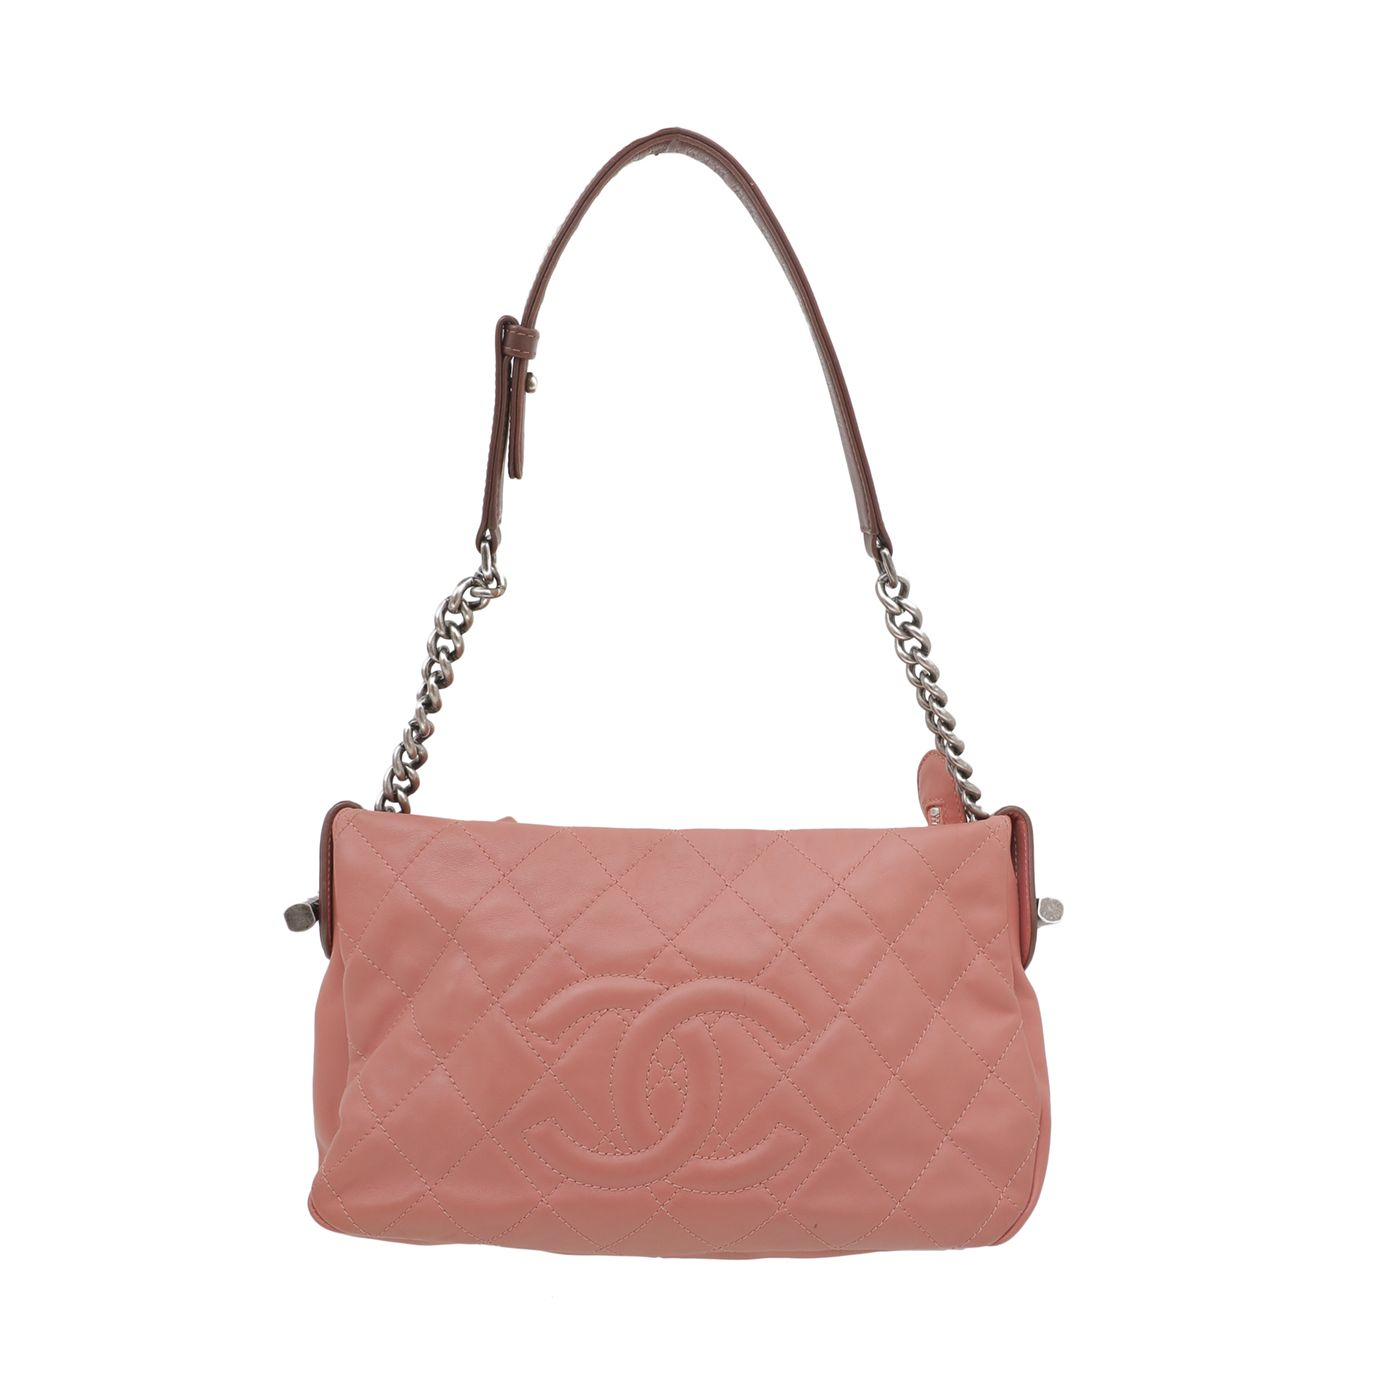 Chanel Peach Country Shoulder Bag